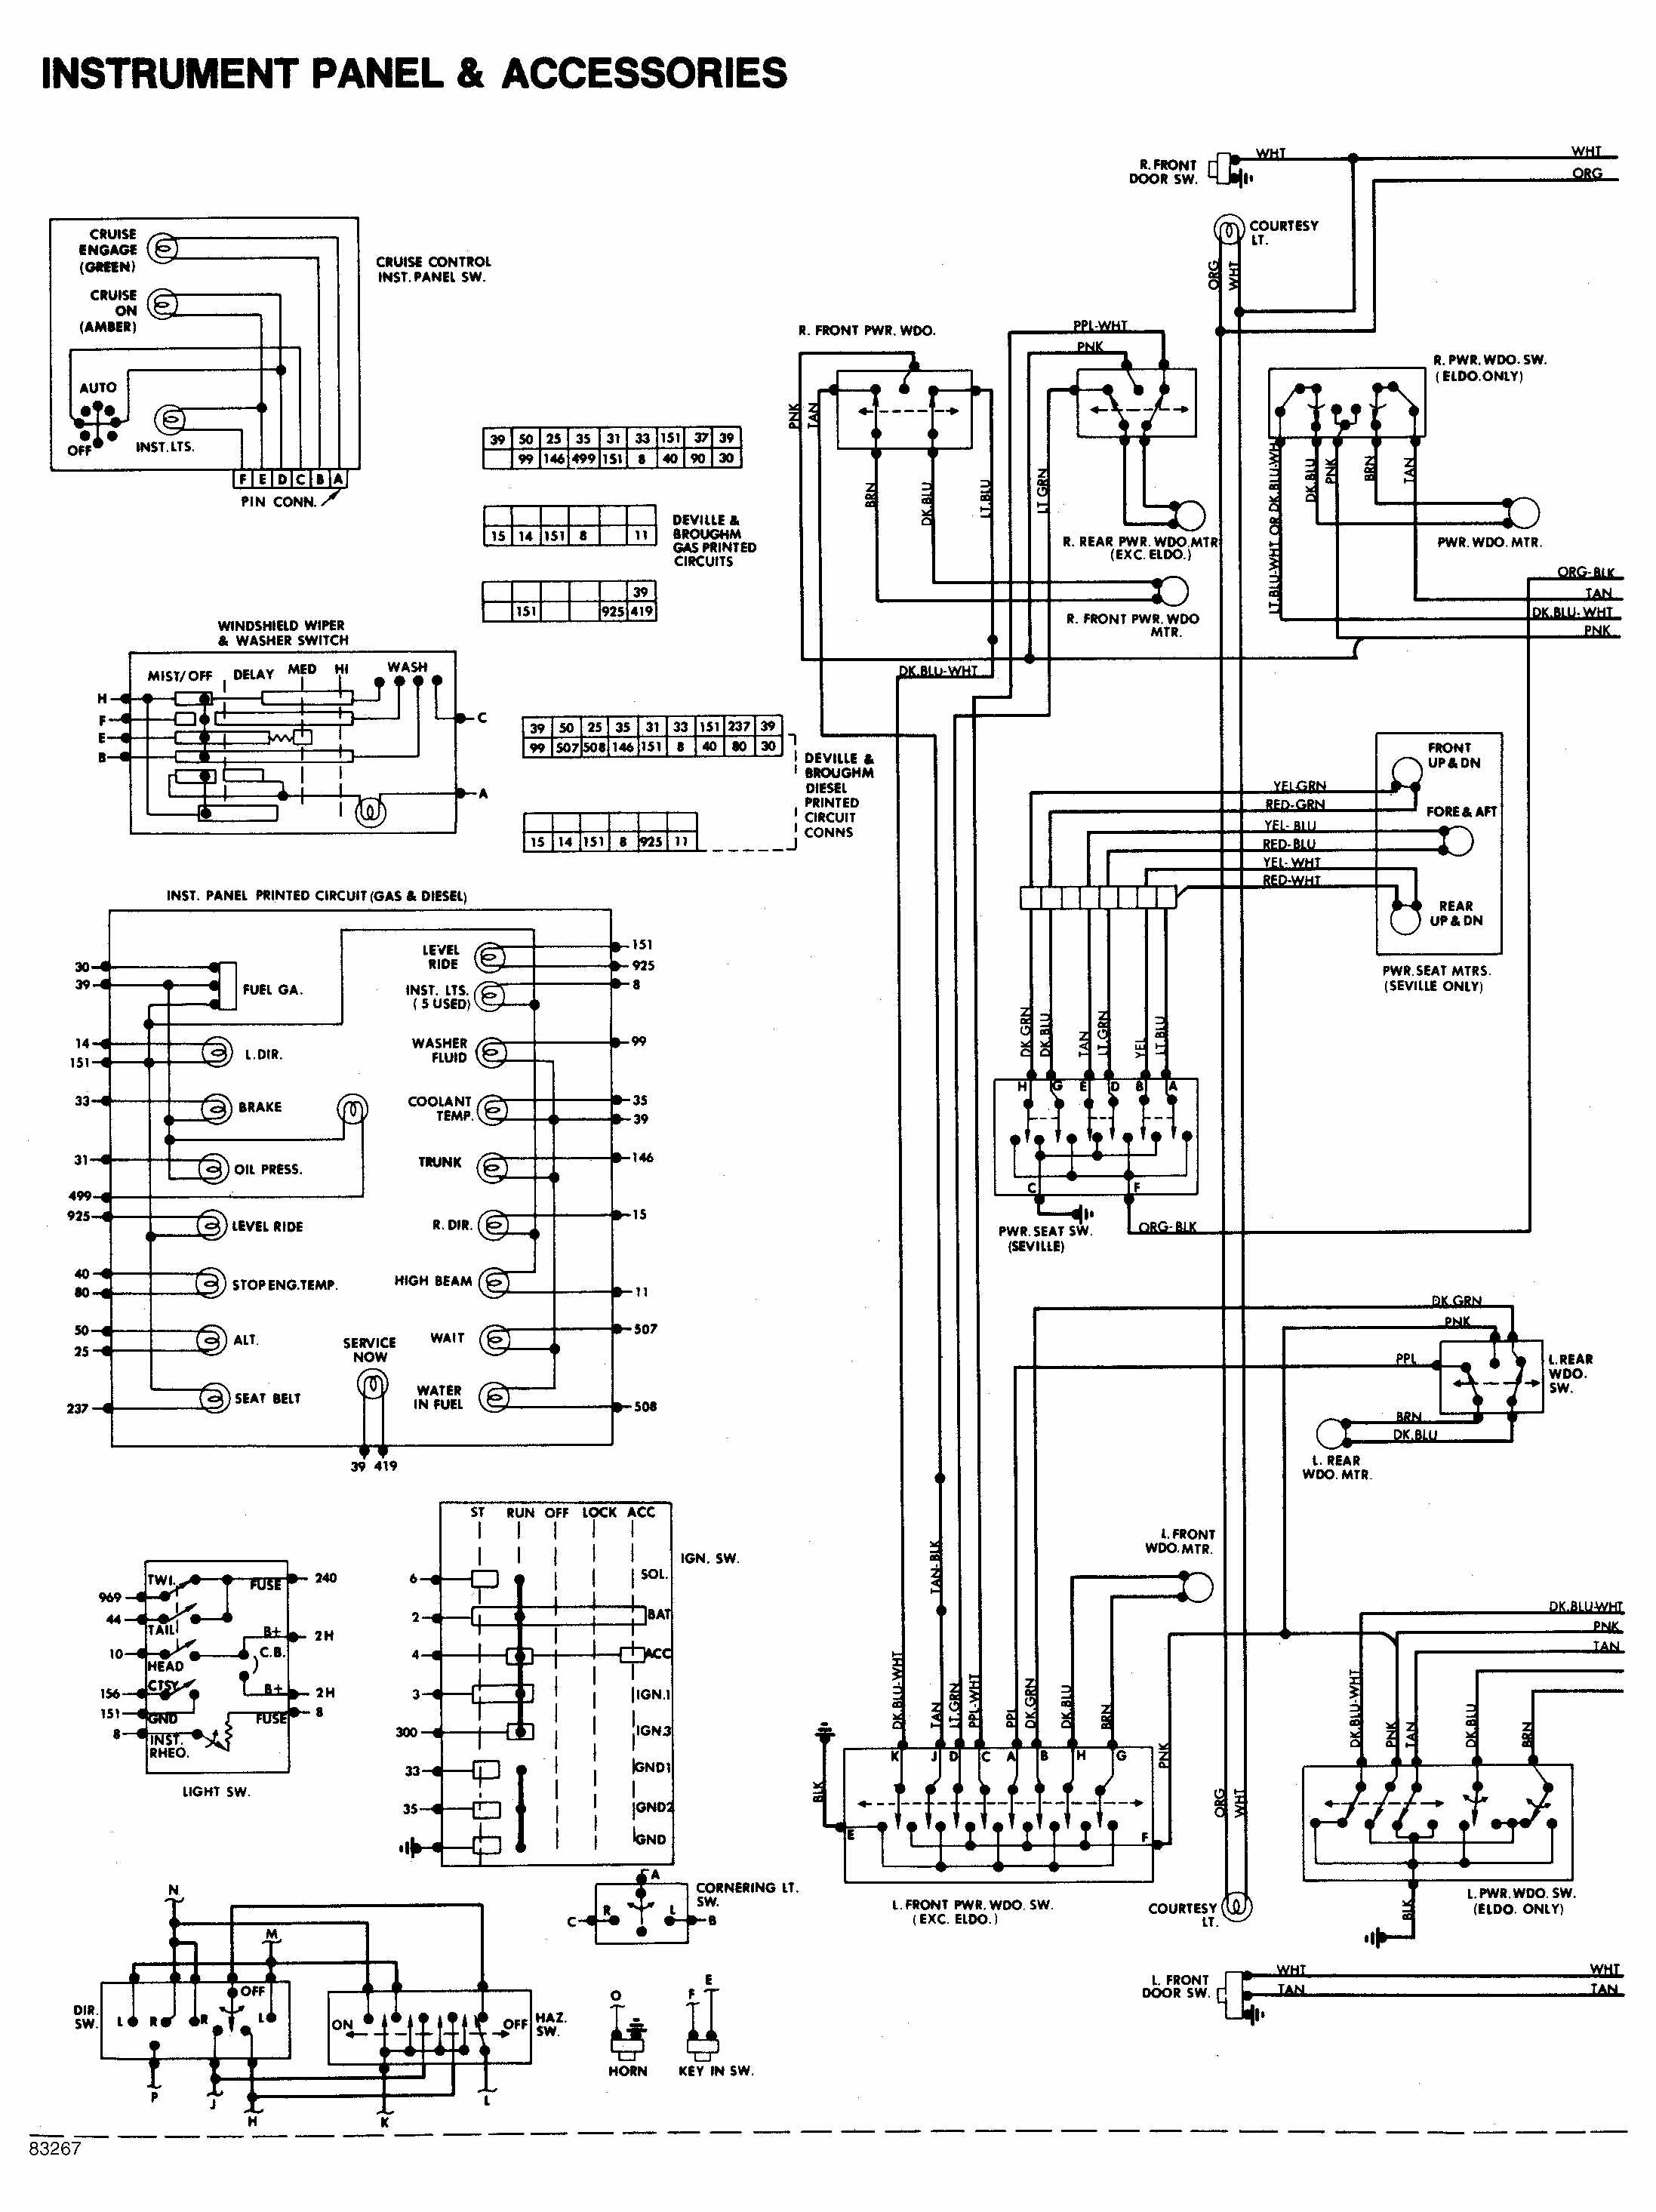 instrument panel and accessories wiring diagram of 1984 cadillac deville chevy diagrams 1997 cadillac deville fuse box diagram at eliteediting.co